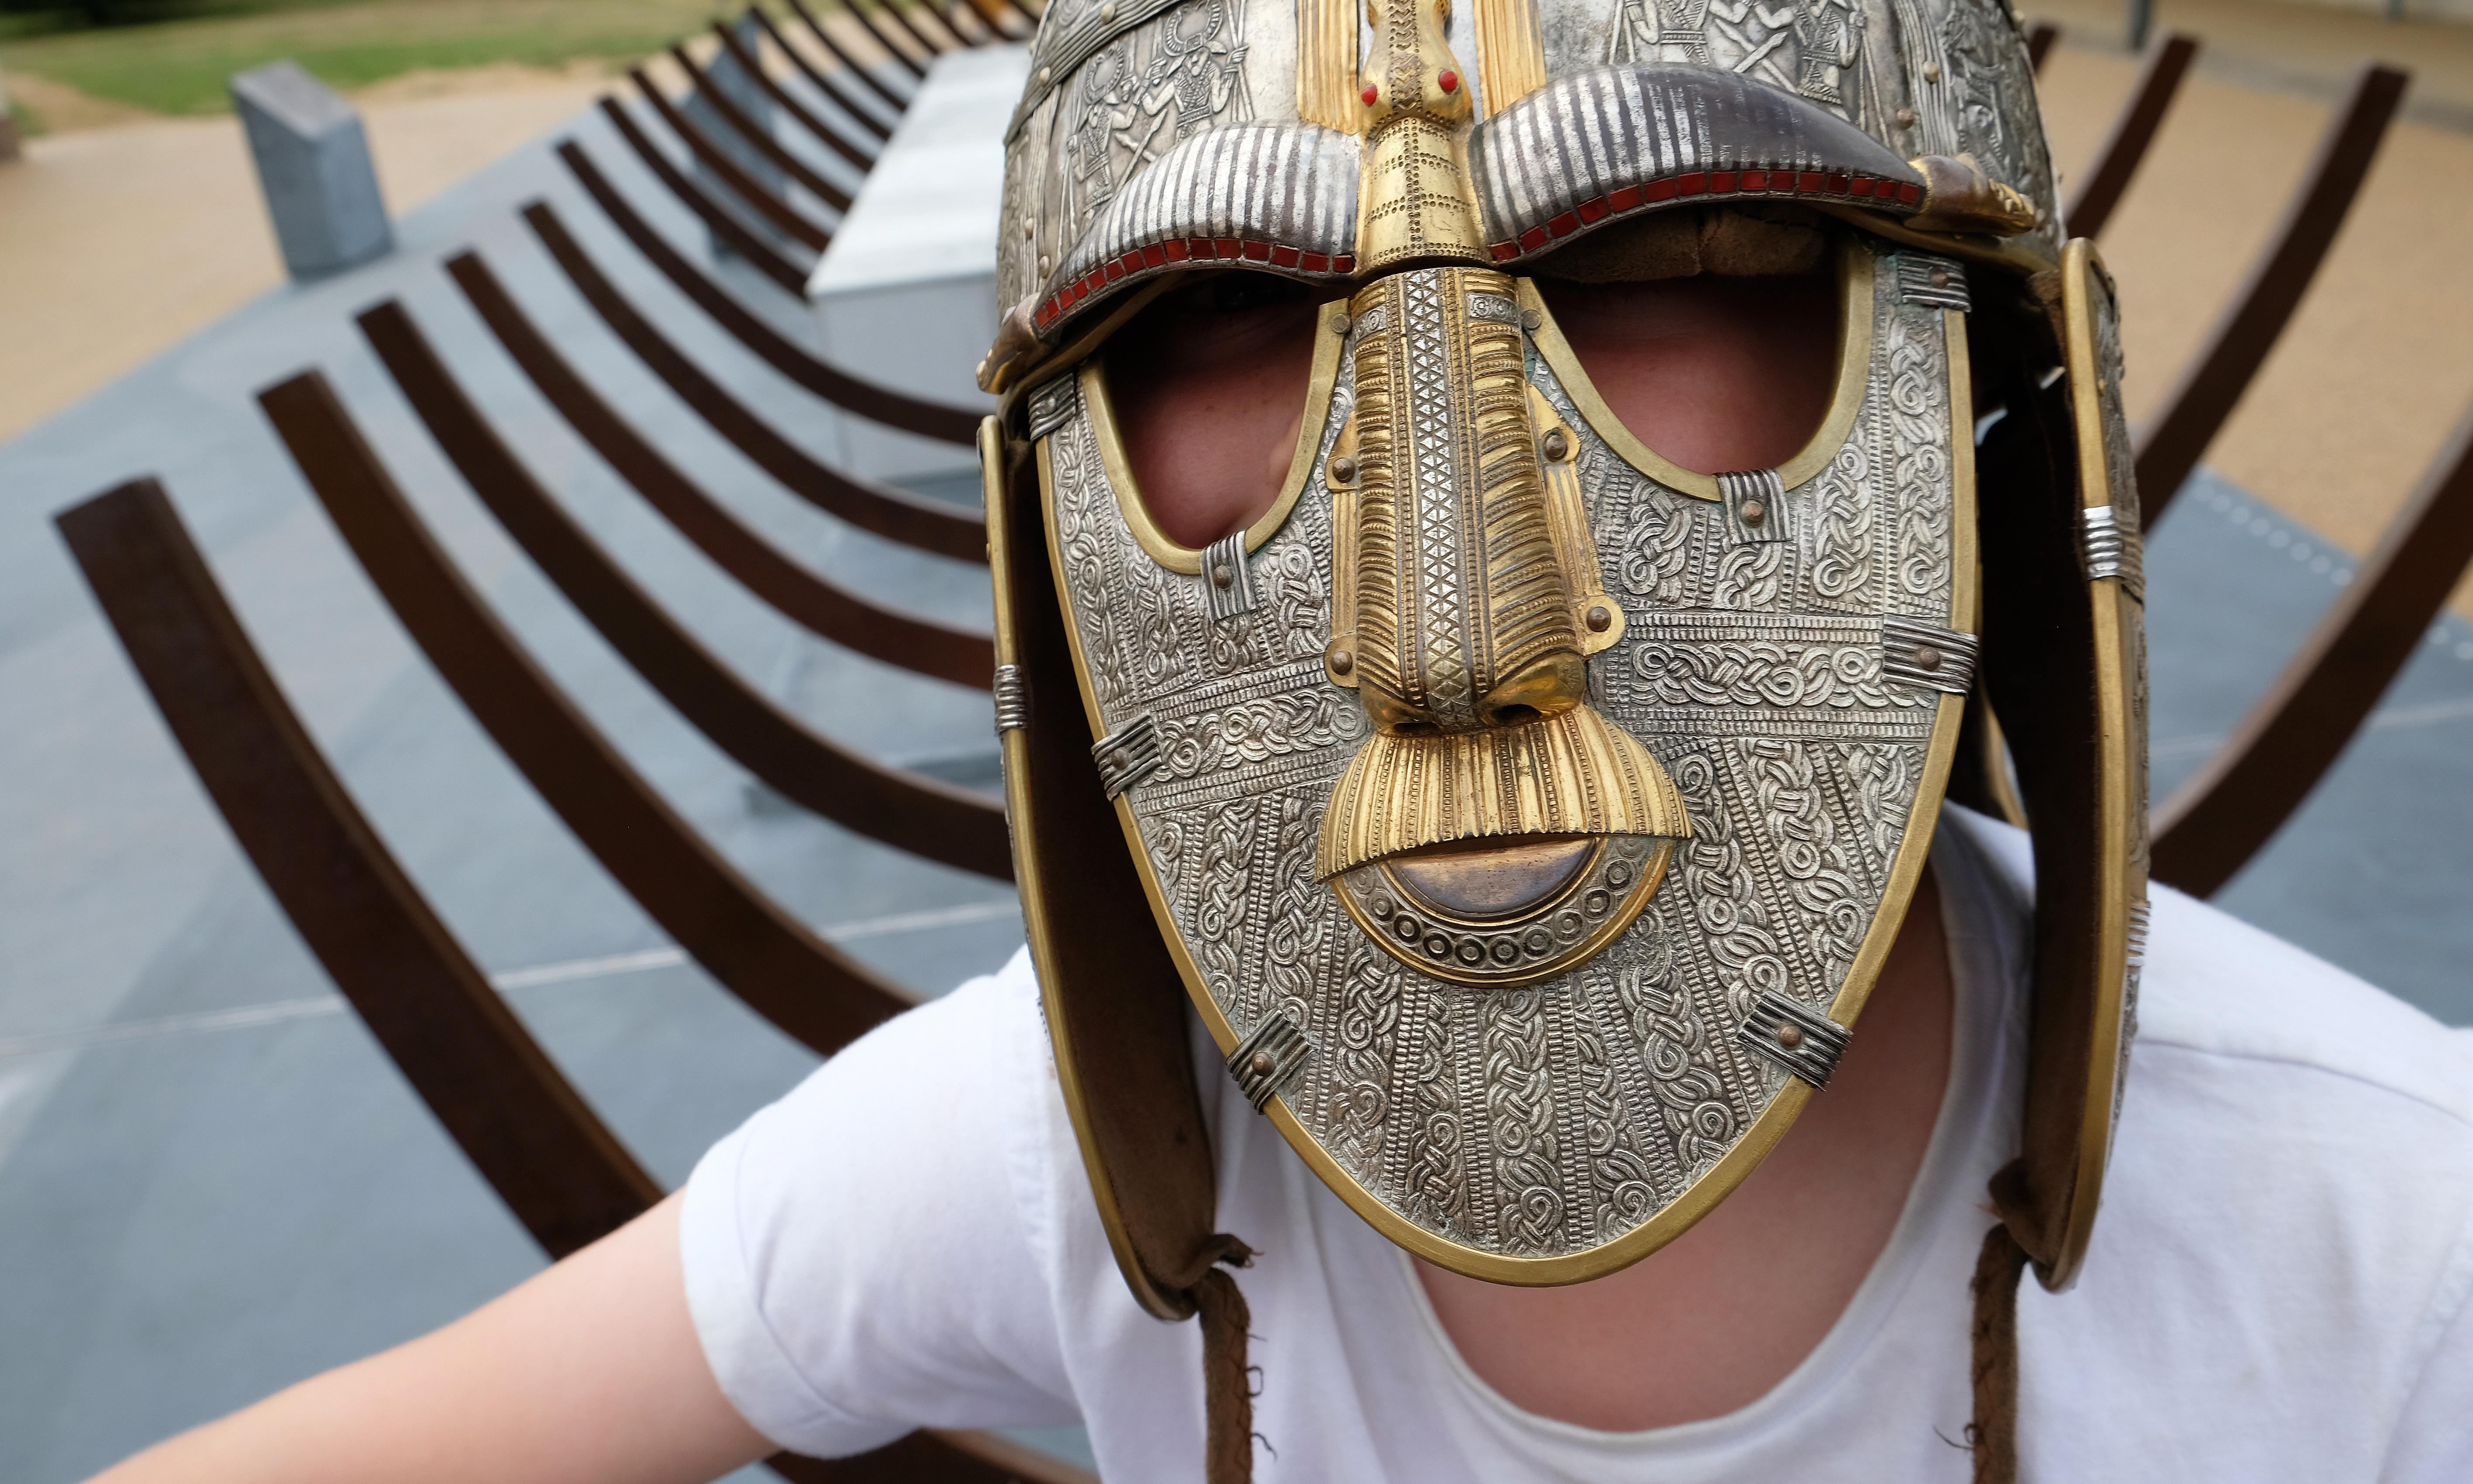 Who says Sutton Hoo site was dull?